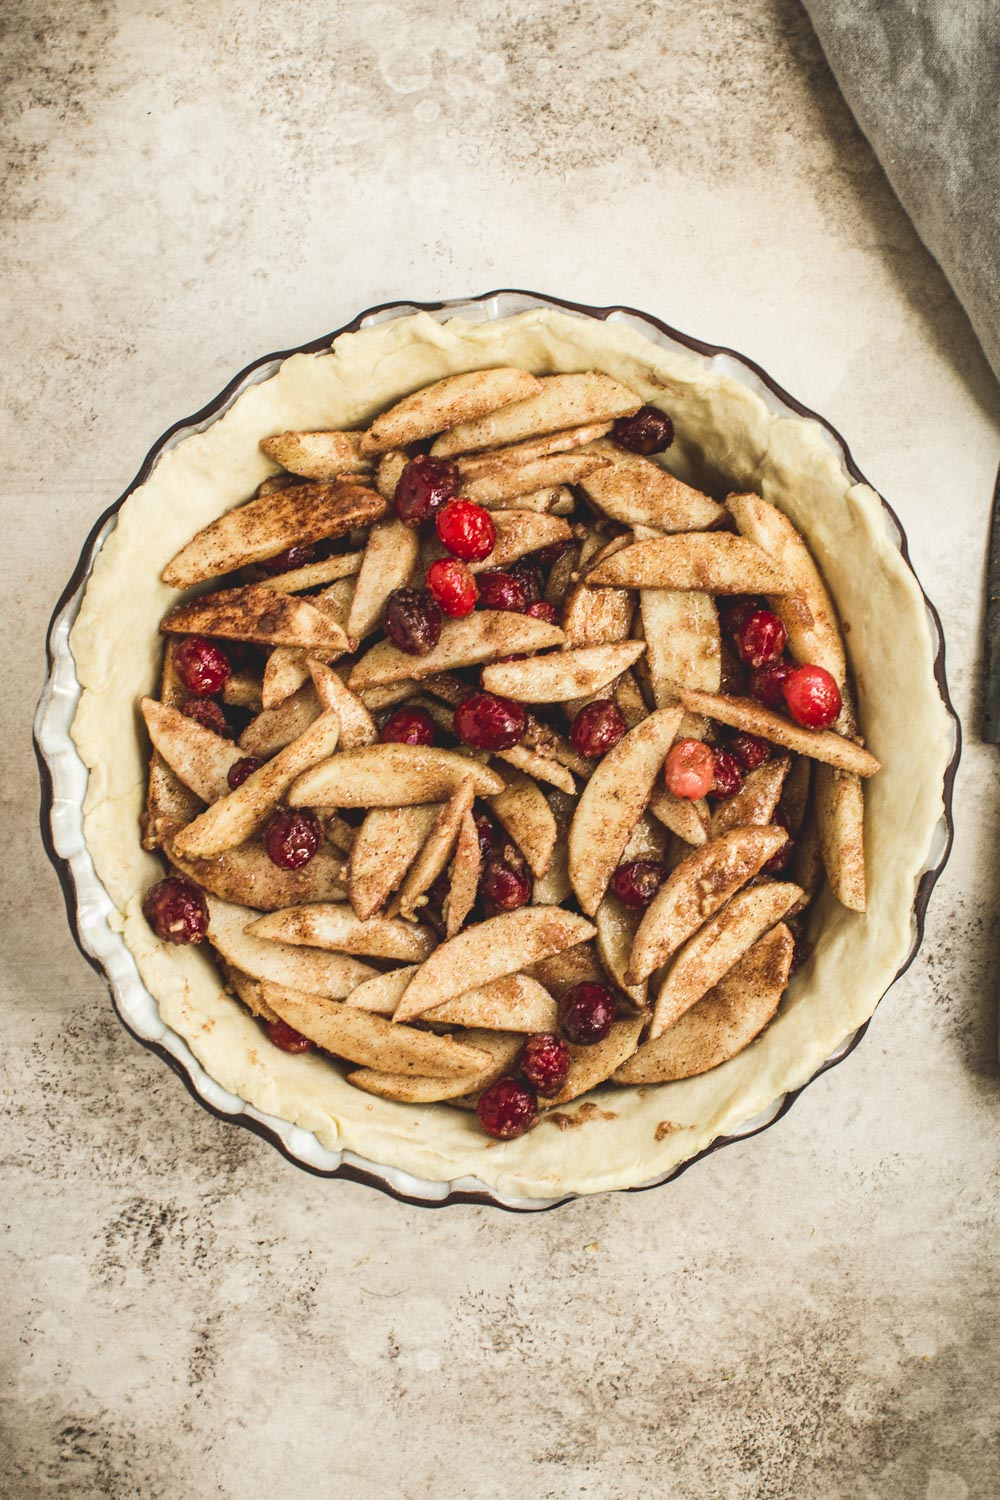 Apple and cranberry filling in a pie shell.